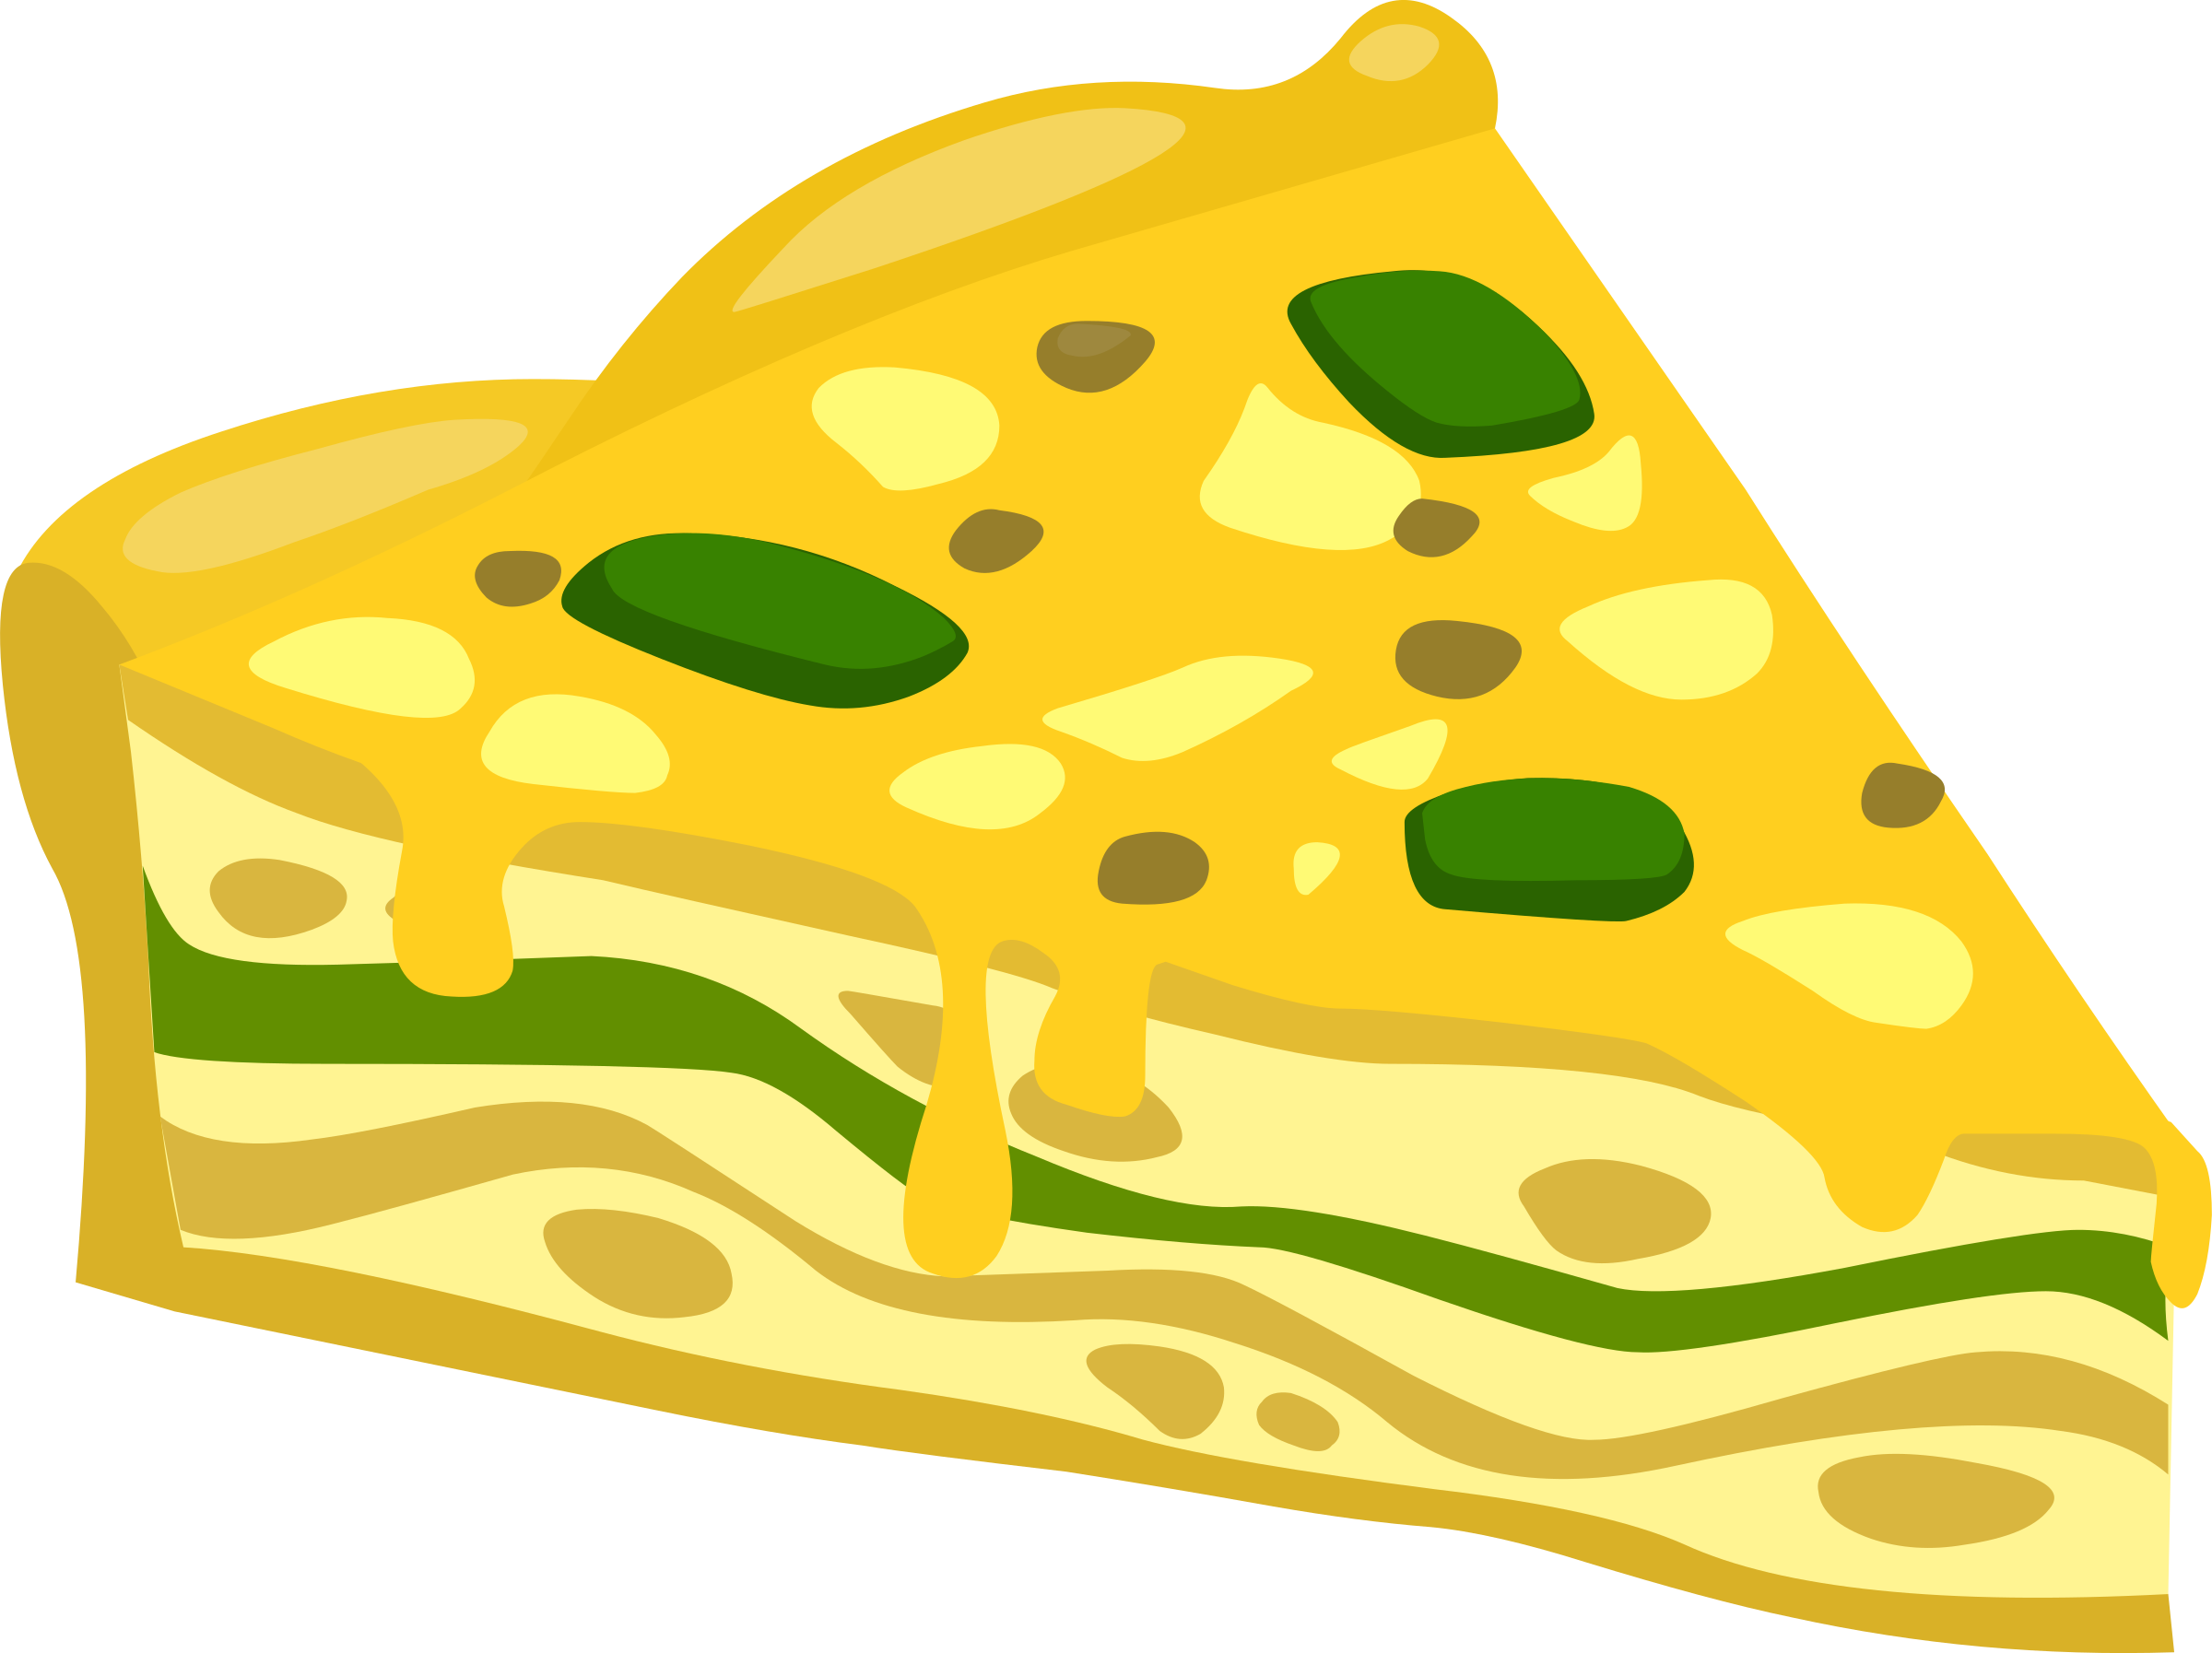 Glitch clipart yellow BIG Frittata Food Clipart IMAGE